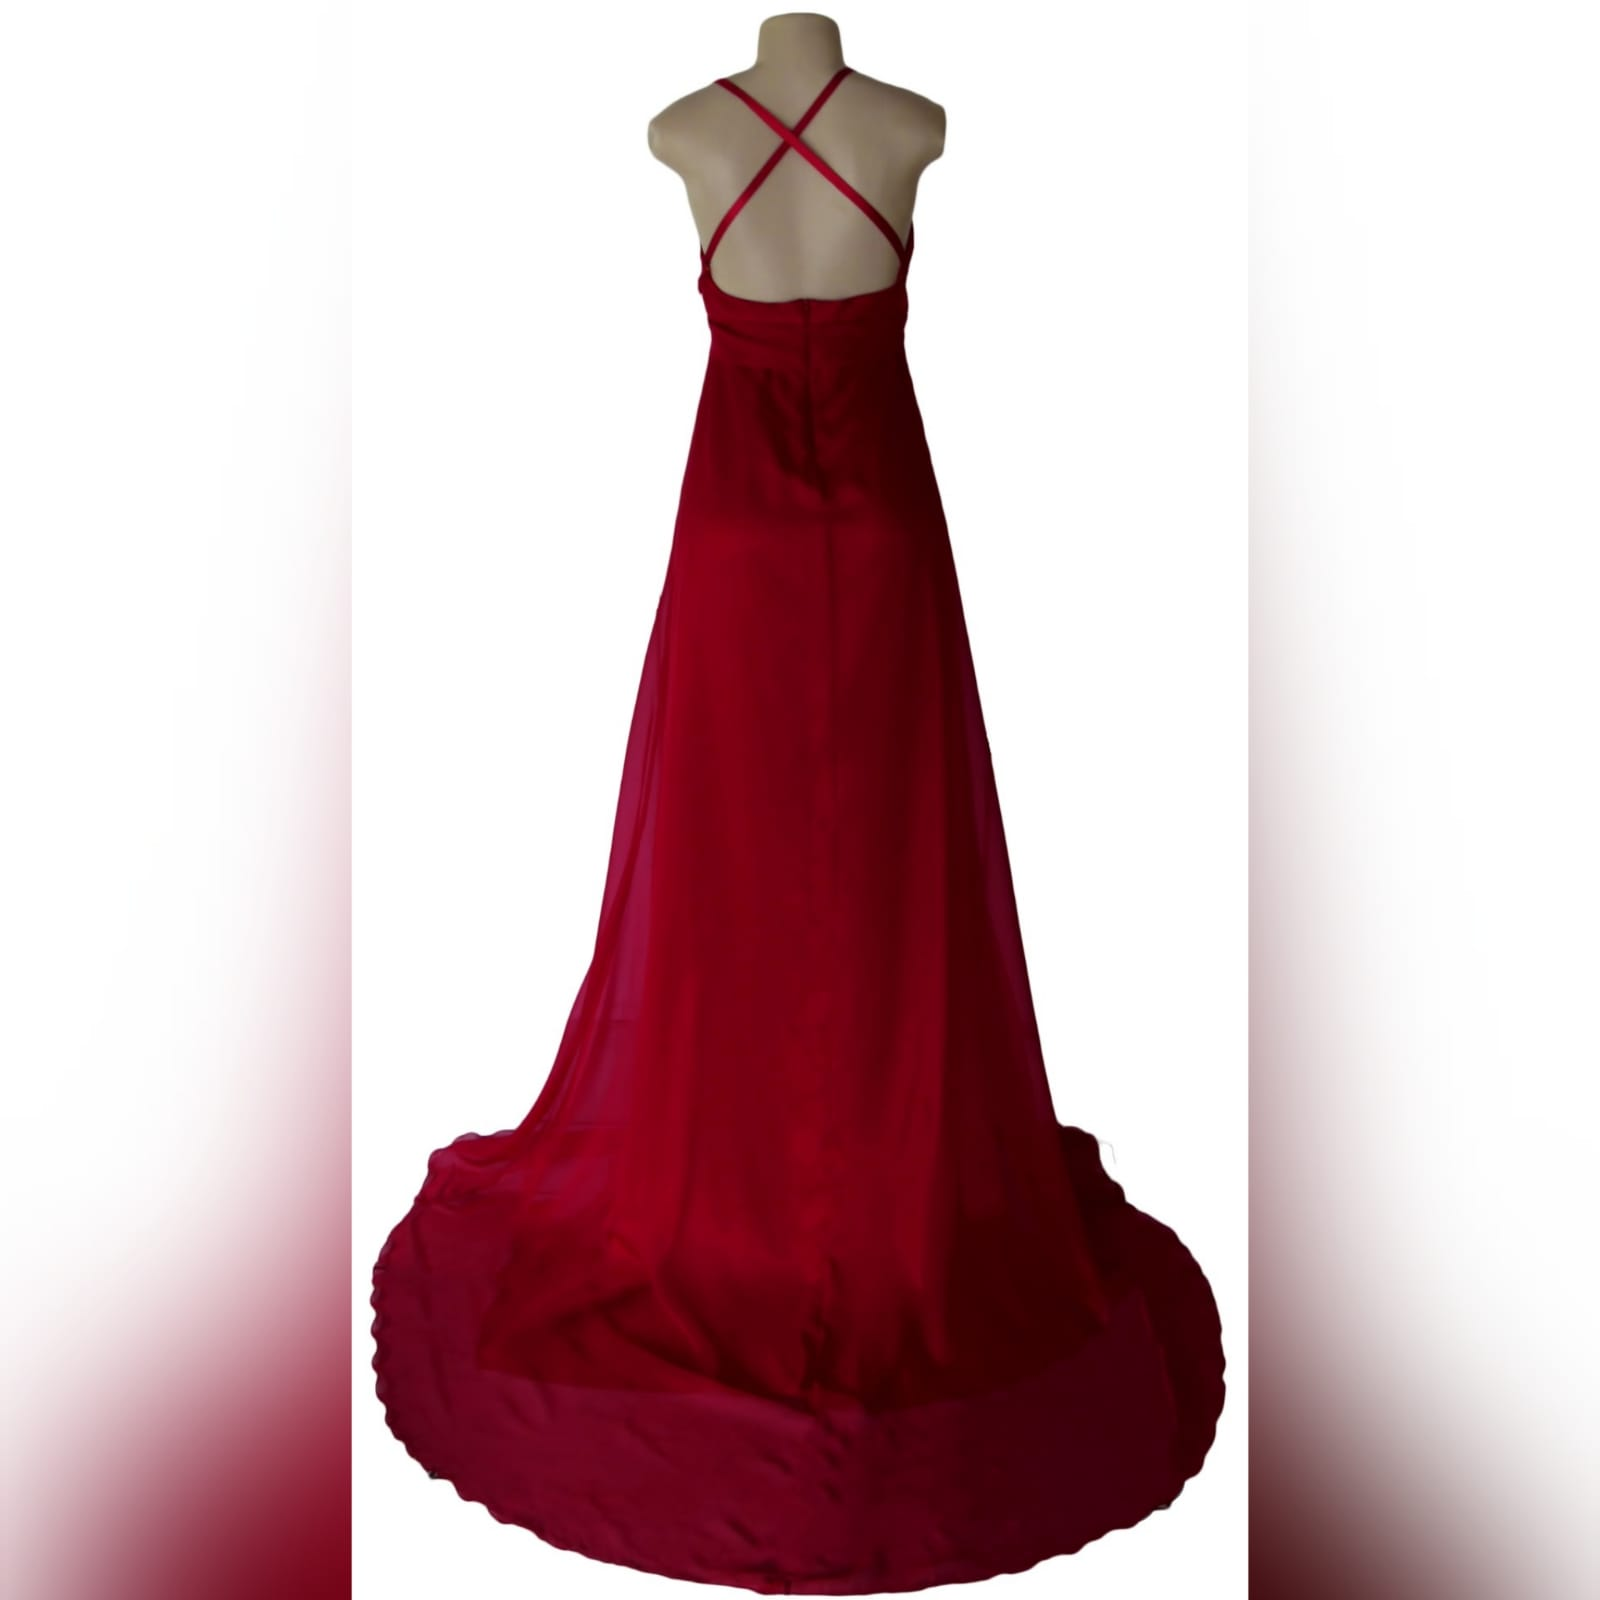 Long red flowy formal dress 3 long red flowy formal dress, with a low v neckline, low open back with crossed thin shoulder straps. Wide waist belt, high slit and a train. A design suitable for various occasions, made per measurements any colour you want.